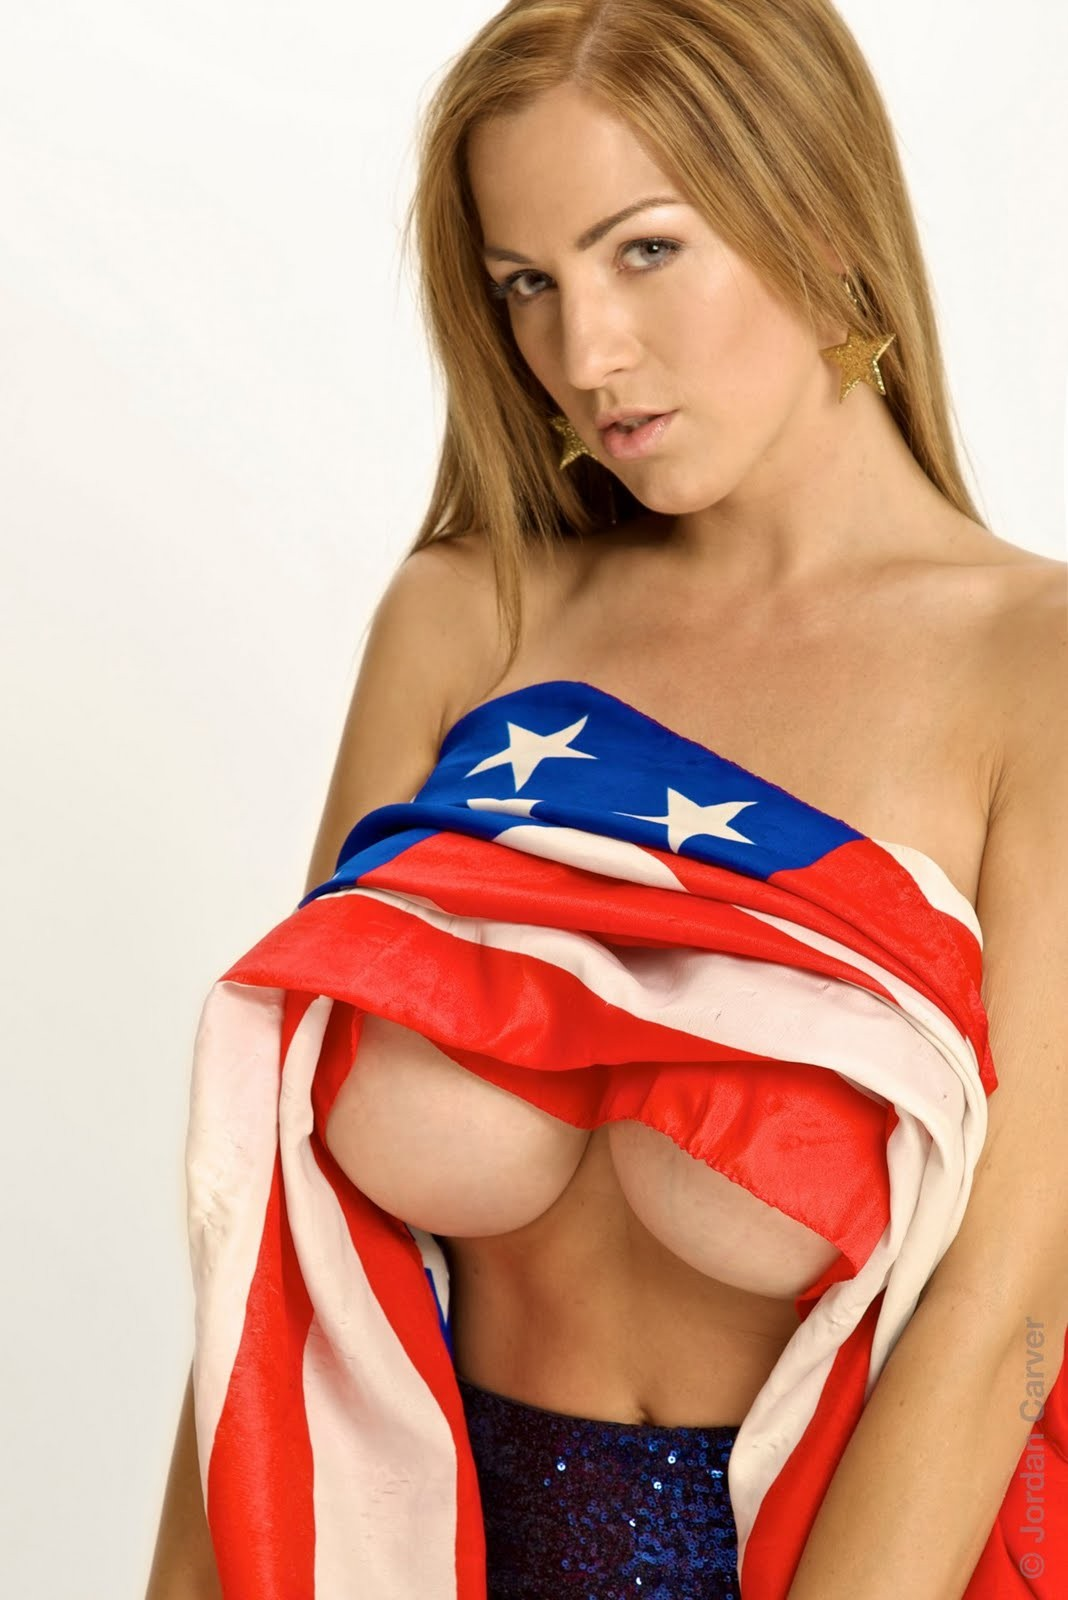 Jordan Carver Independence day Special exposure9.jpg